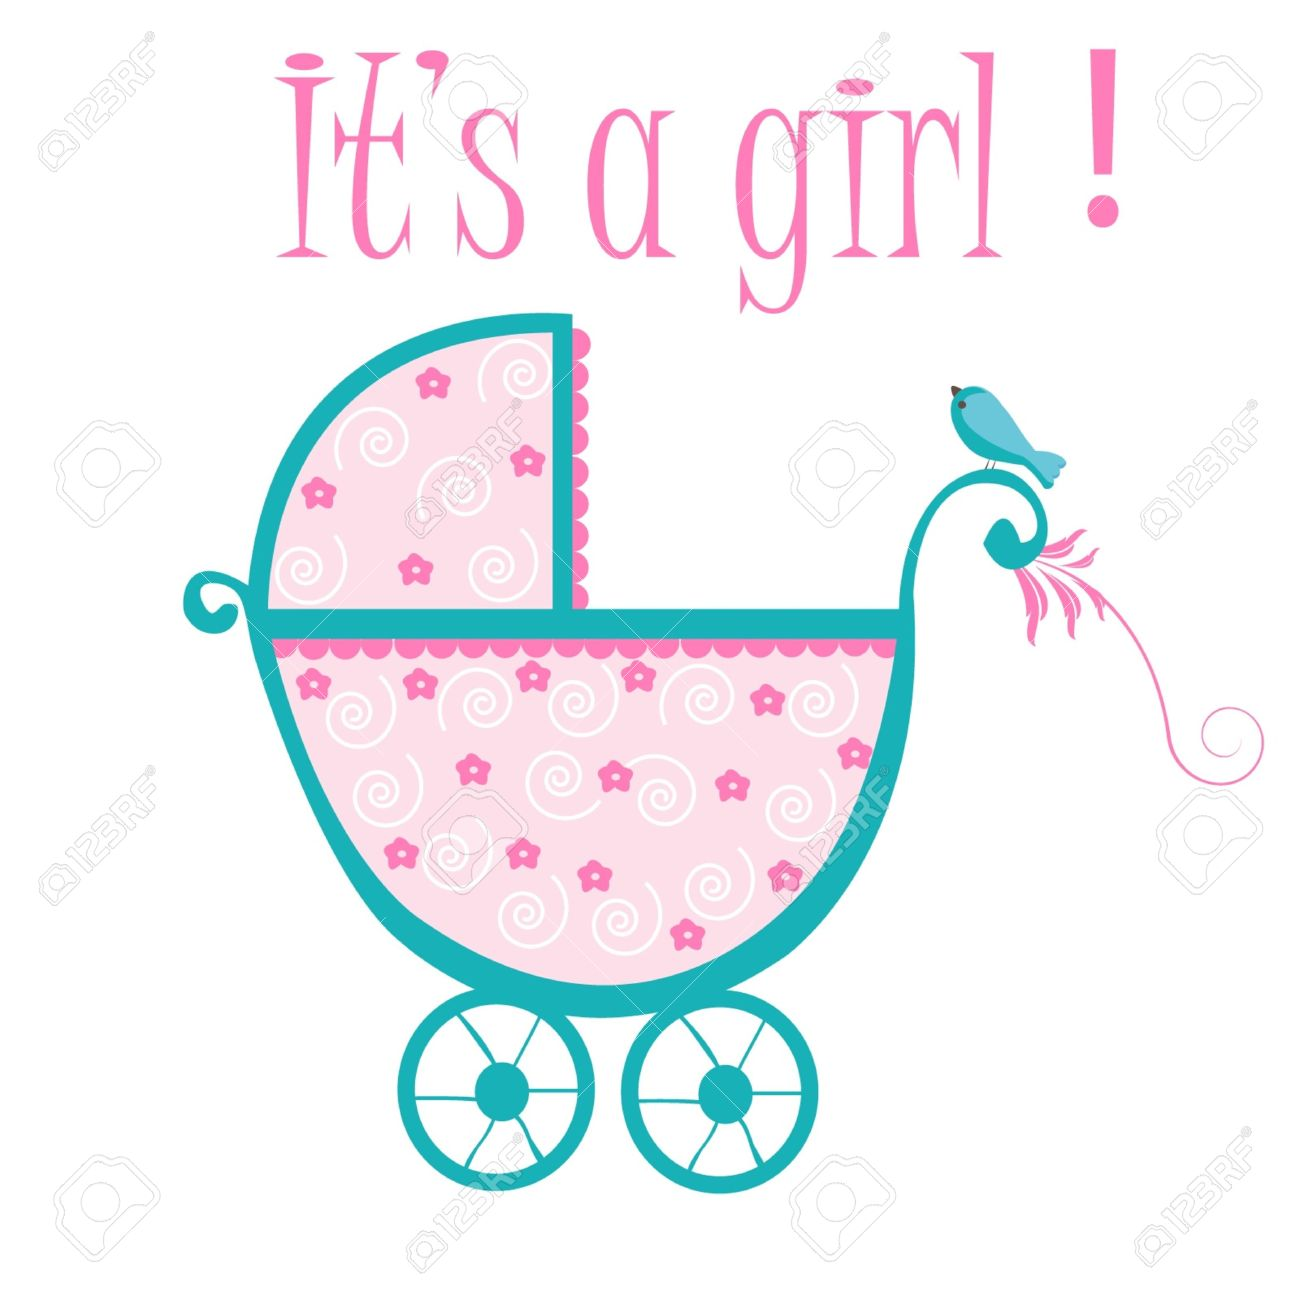 Welcoming baby girl romeondinez 38 wonderful baby girl born wishes pictures m4hsunfo